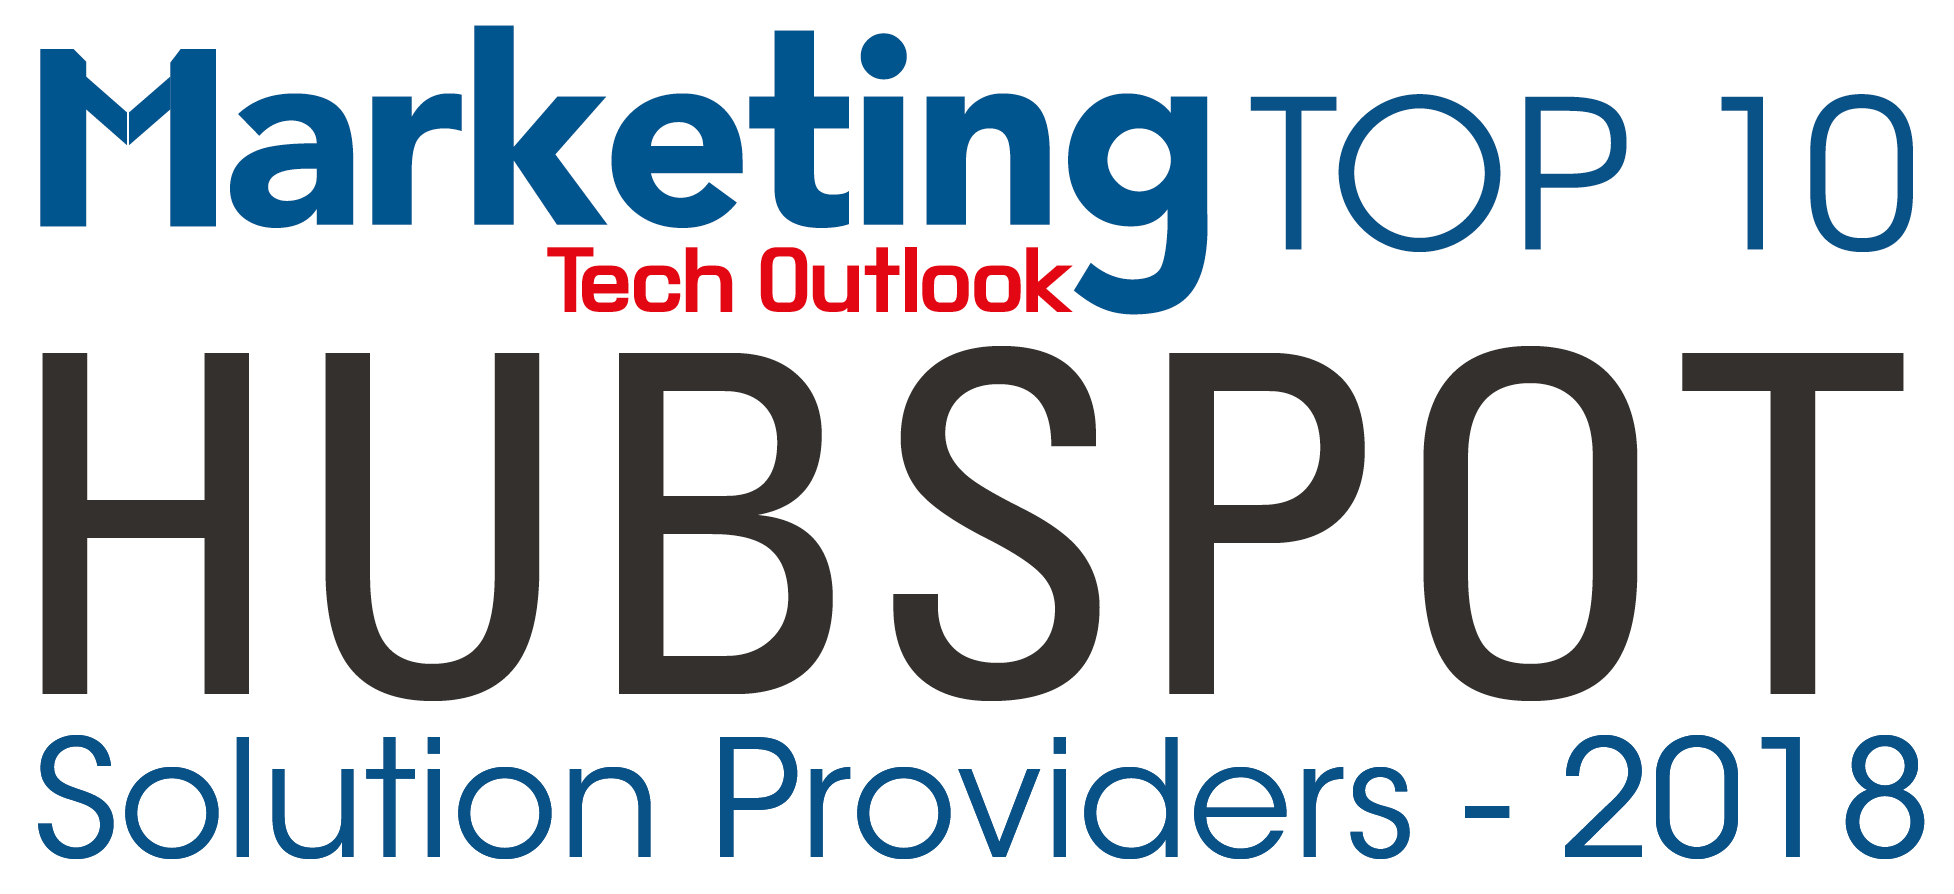 HubSpot Top 10 Solution Provider